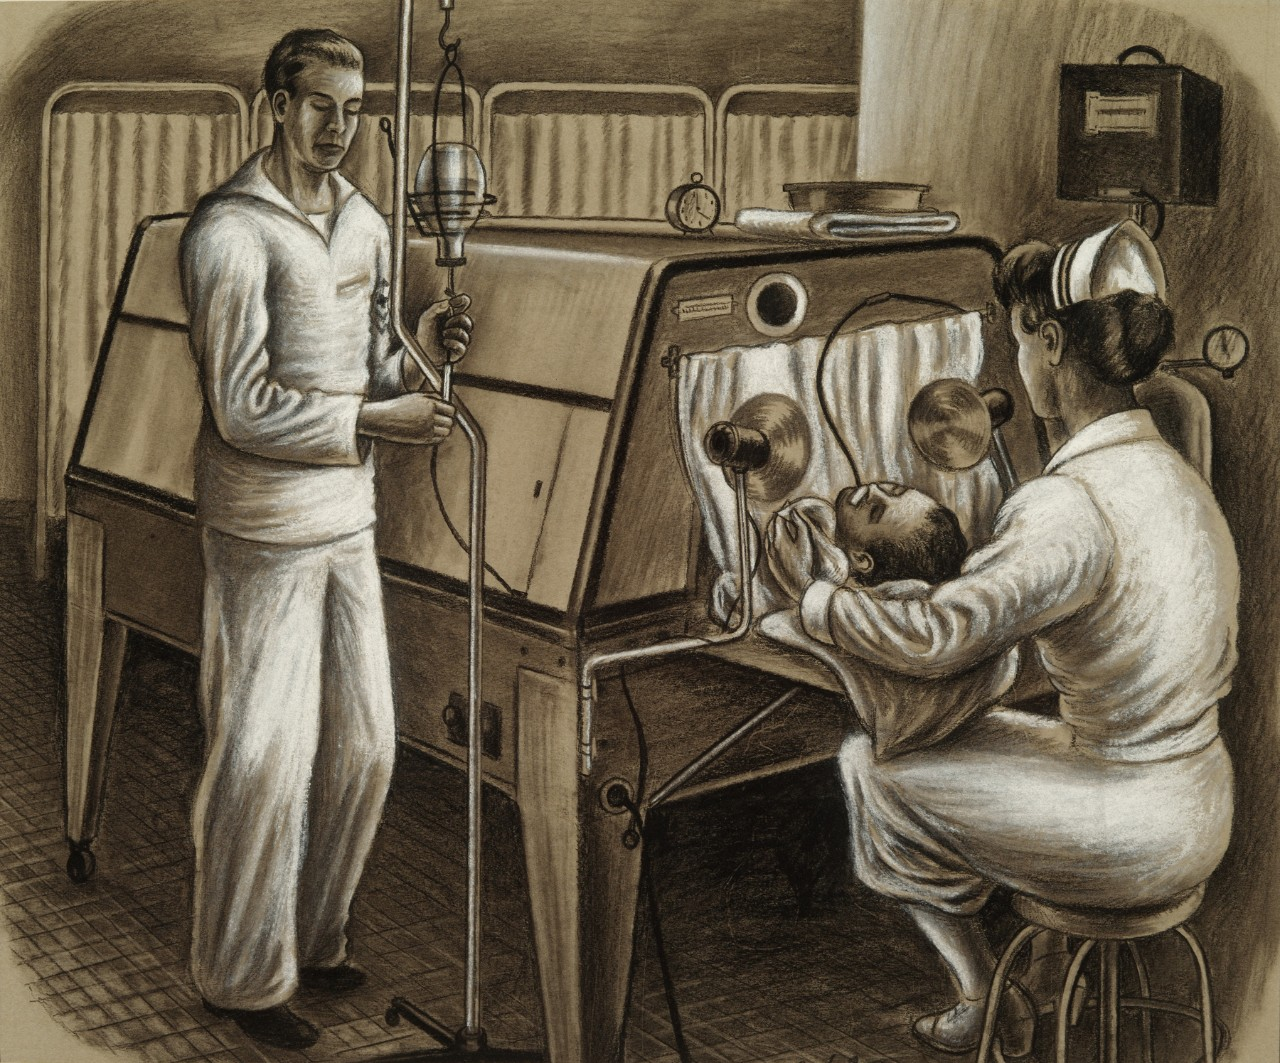 A nurse and a corpsman tend to a patient in a fever cabinet